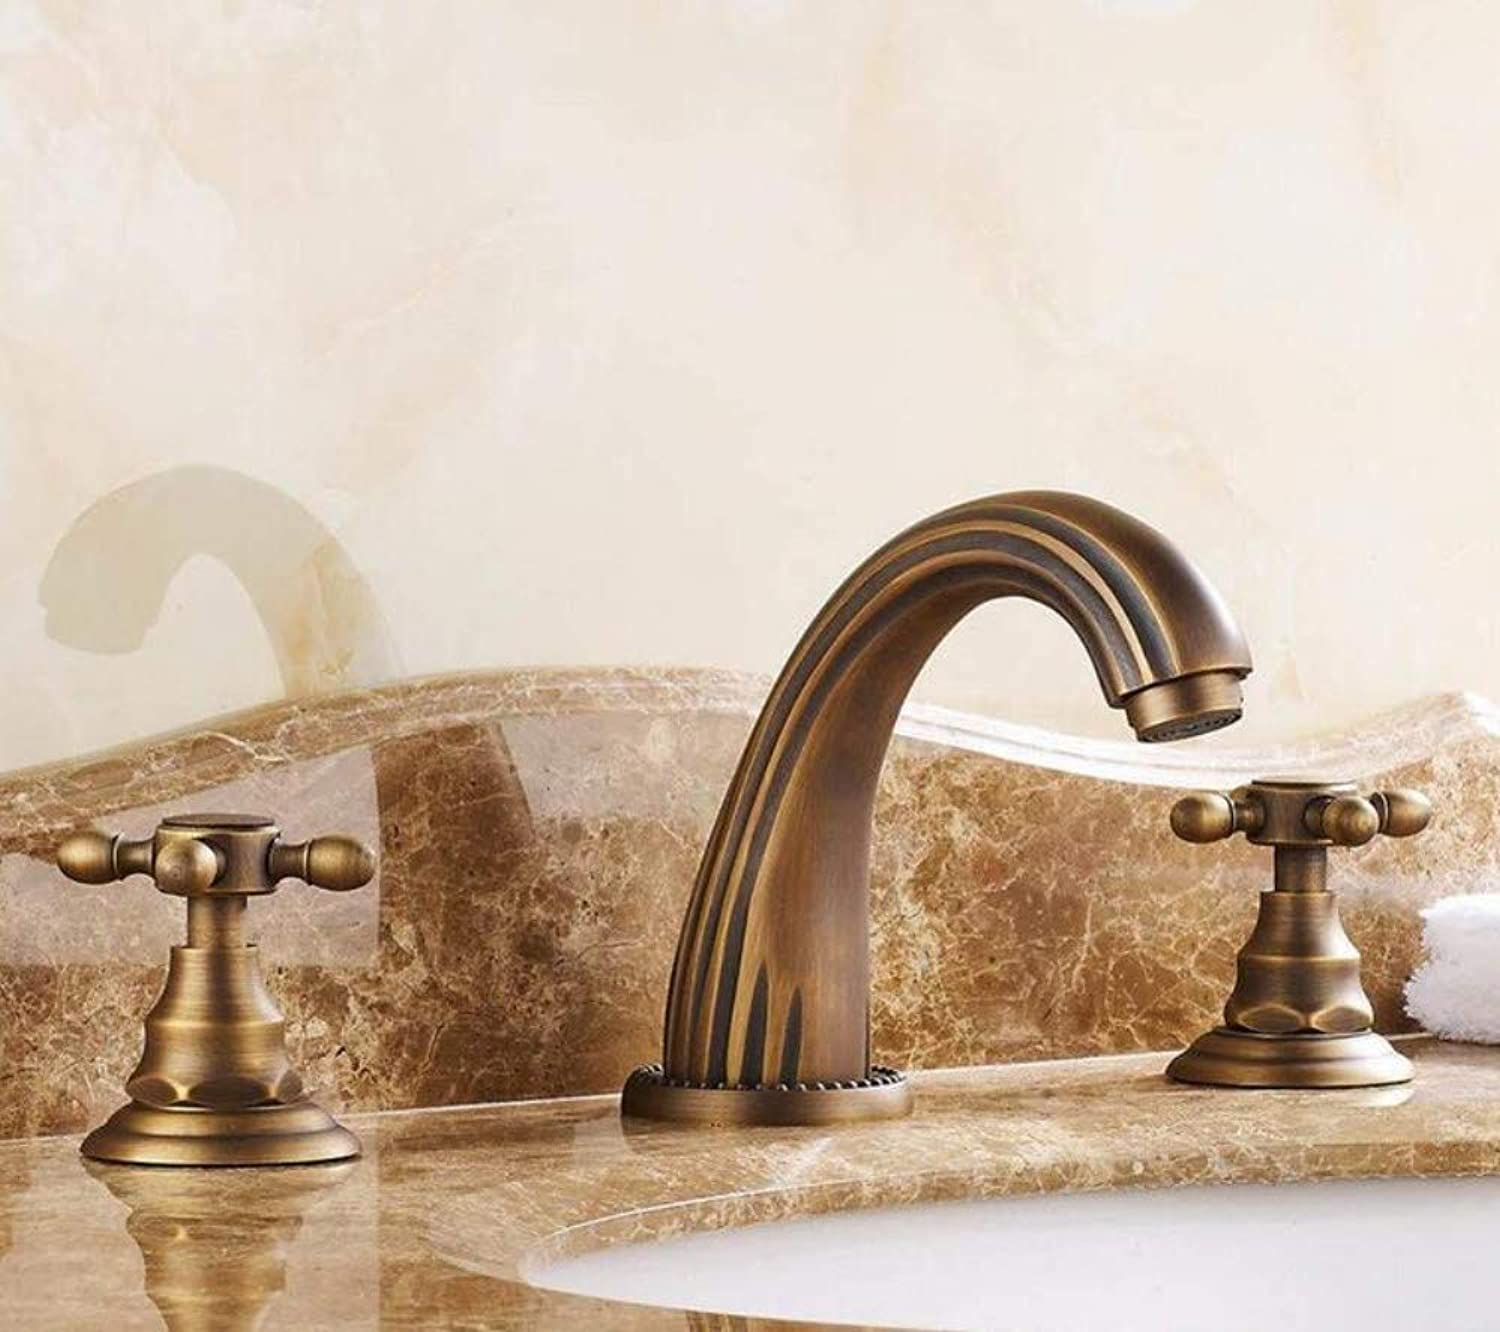 Faucetretro Faucet Mixer All Copper Three Holes Basin Faucet Antique Inches Washbasin Faucet Double Basin Split The Hot and Cold Water